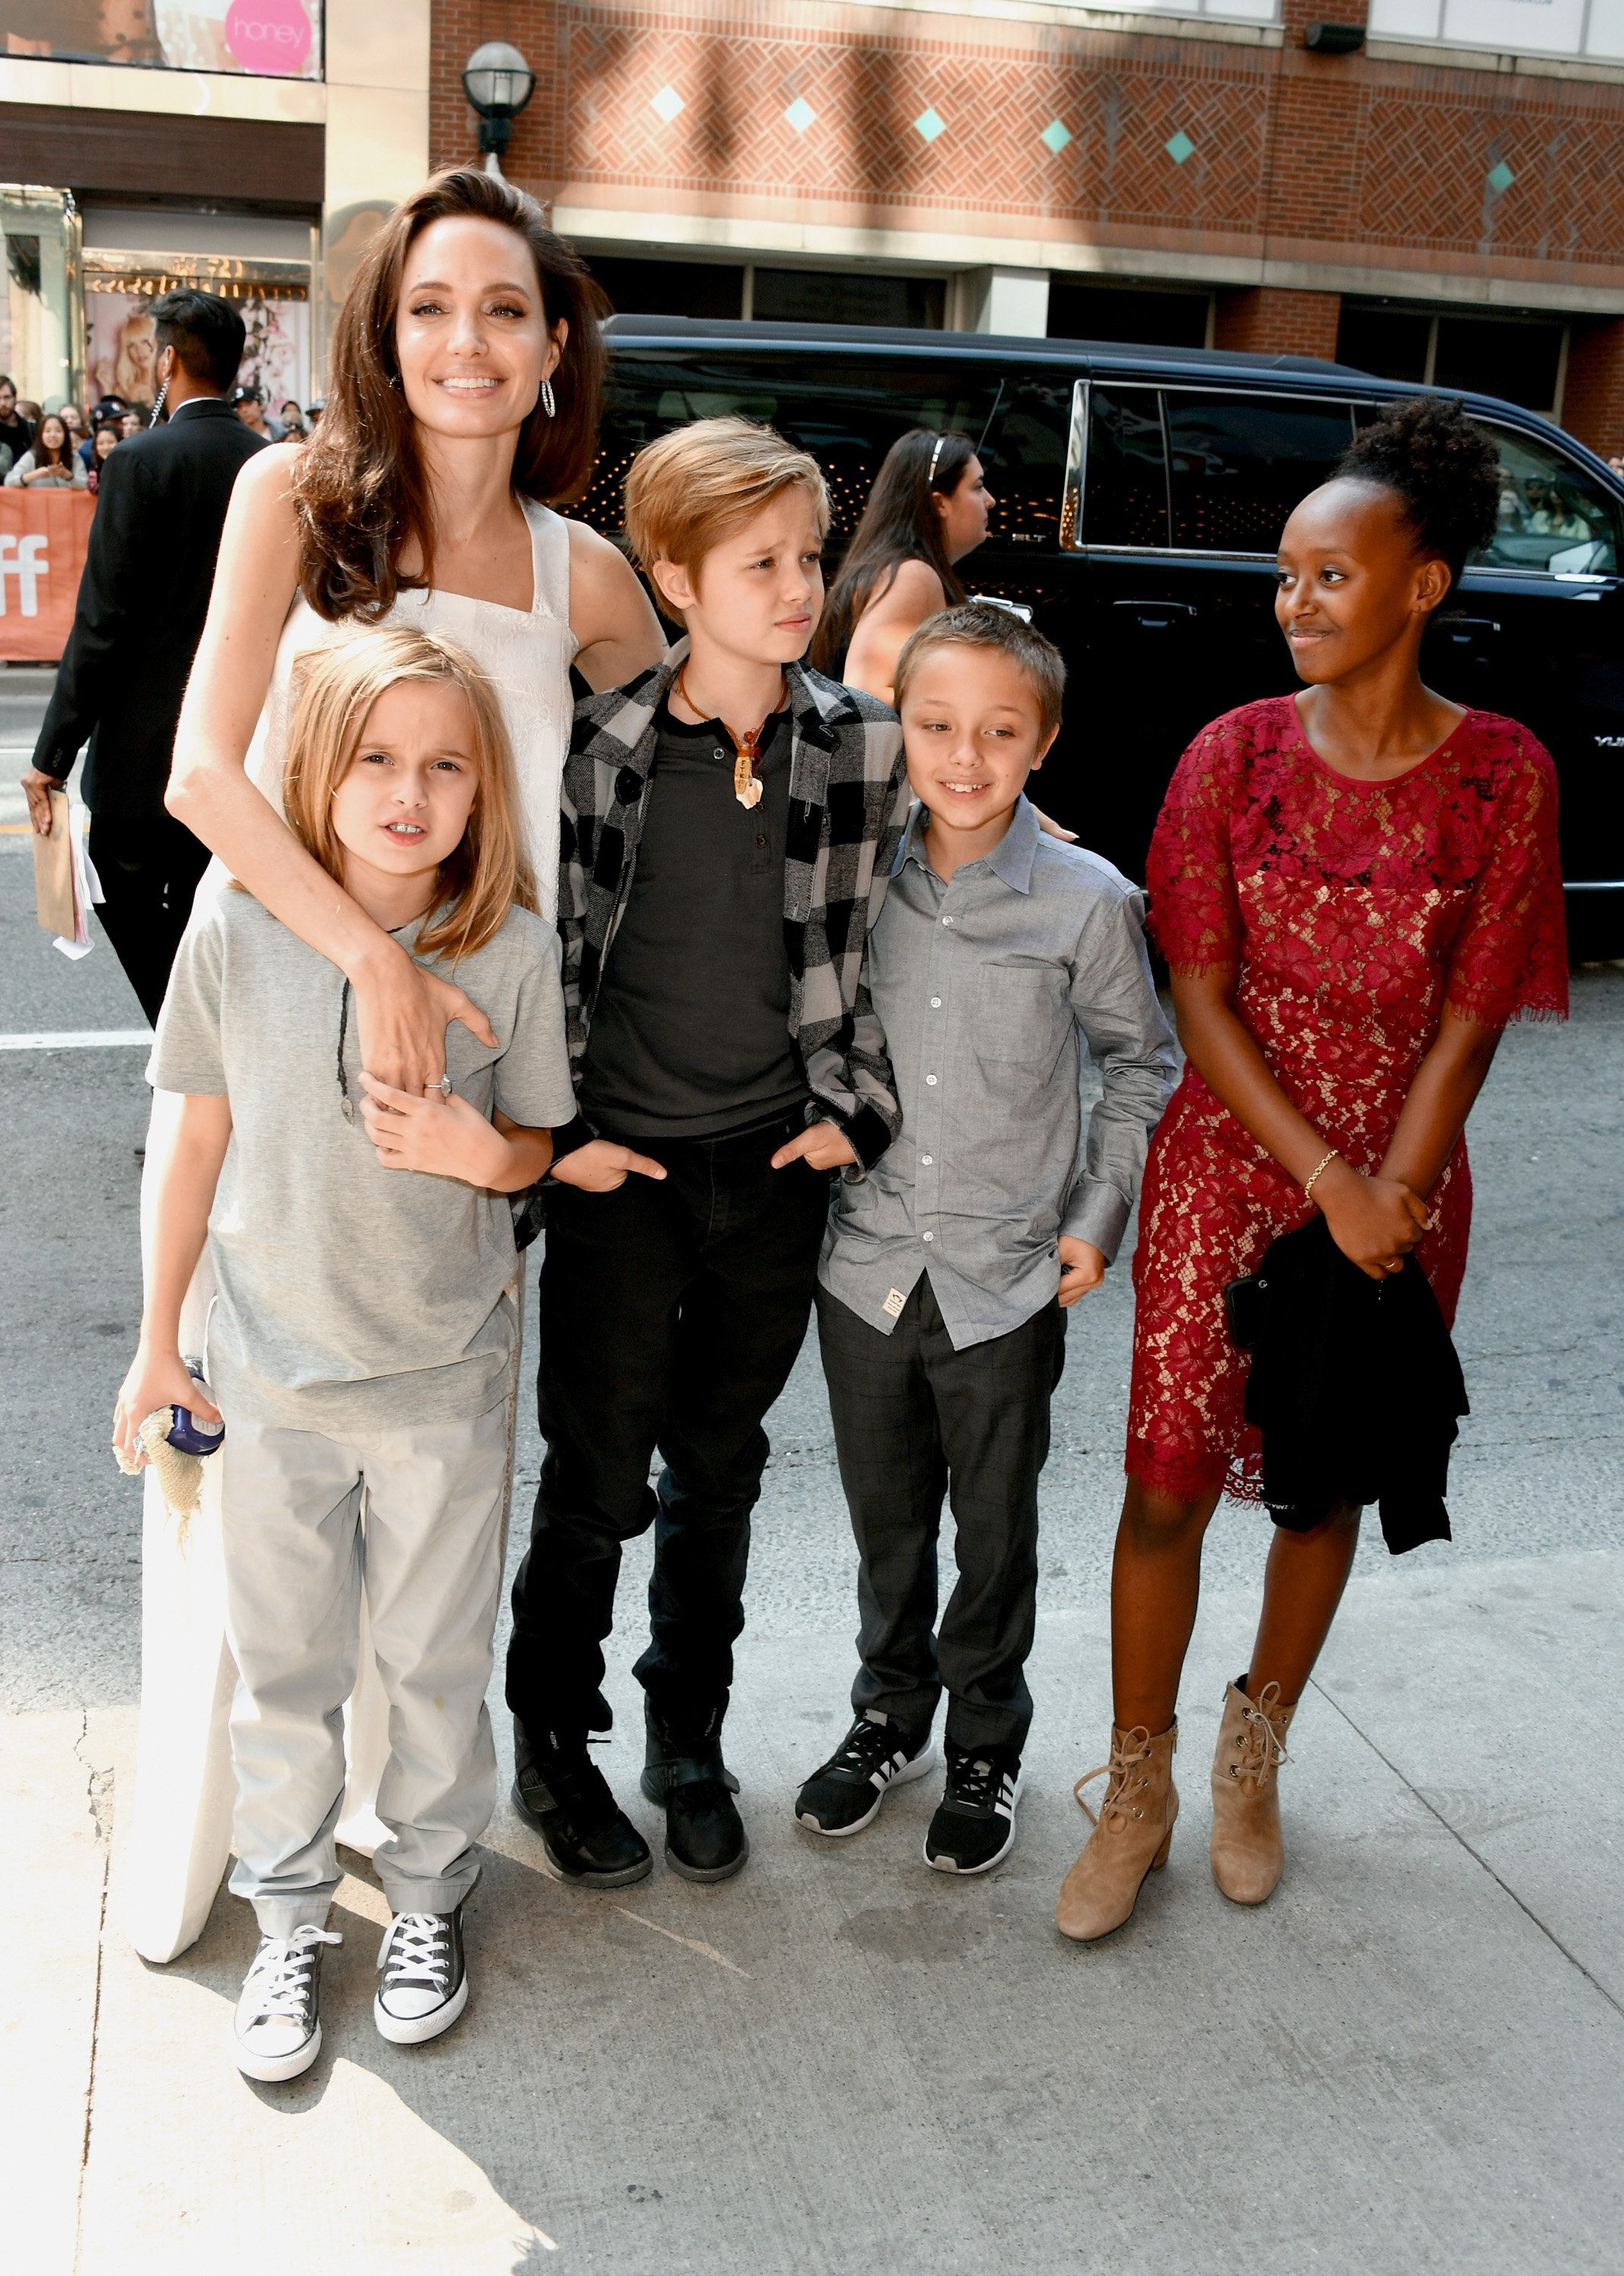 TORONTO, ON - SEPTEMBER 10:  (L-R) Angelina Jolie, Vivienne Jolie-Pitt, Shiloh Jolie-Pitt, Knox Leon Jolie-Pitt, and Zahara Jolie-Pitt attend 'The Breadwinner' premiere during the 2017 Toronto International Film Festival at Winter Garden Theatre on September 10, 2017 in Toronto, Canada.  (Photo by George Pimentel/WireImage)